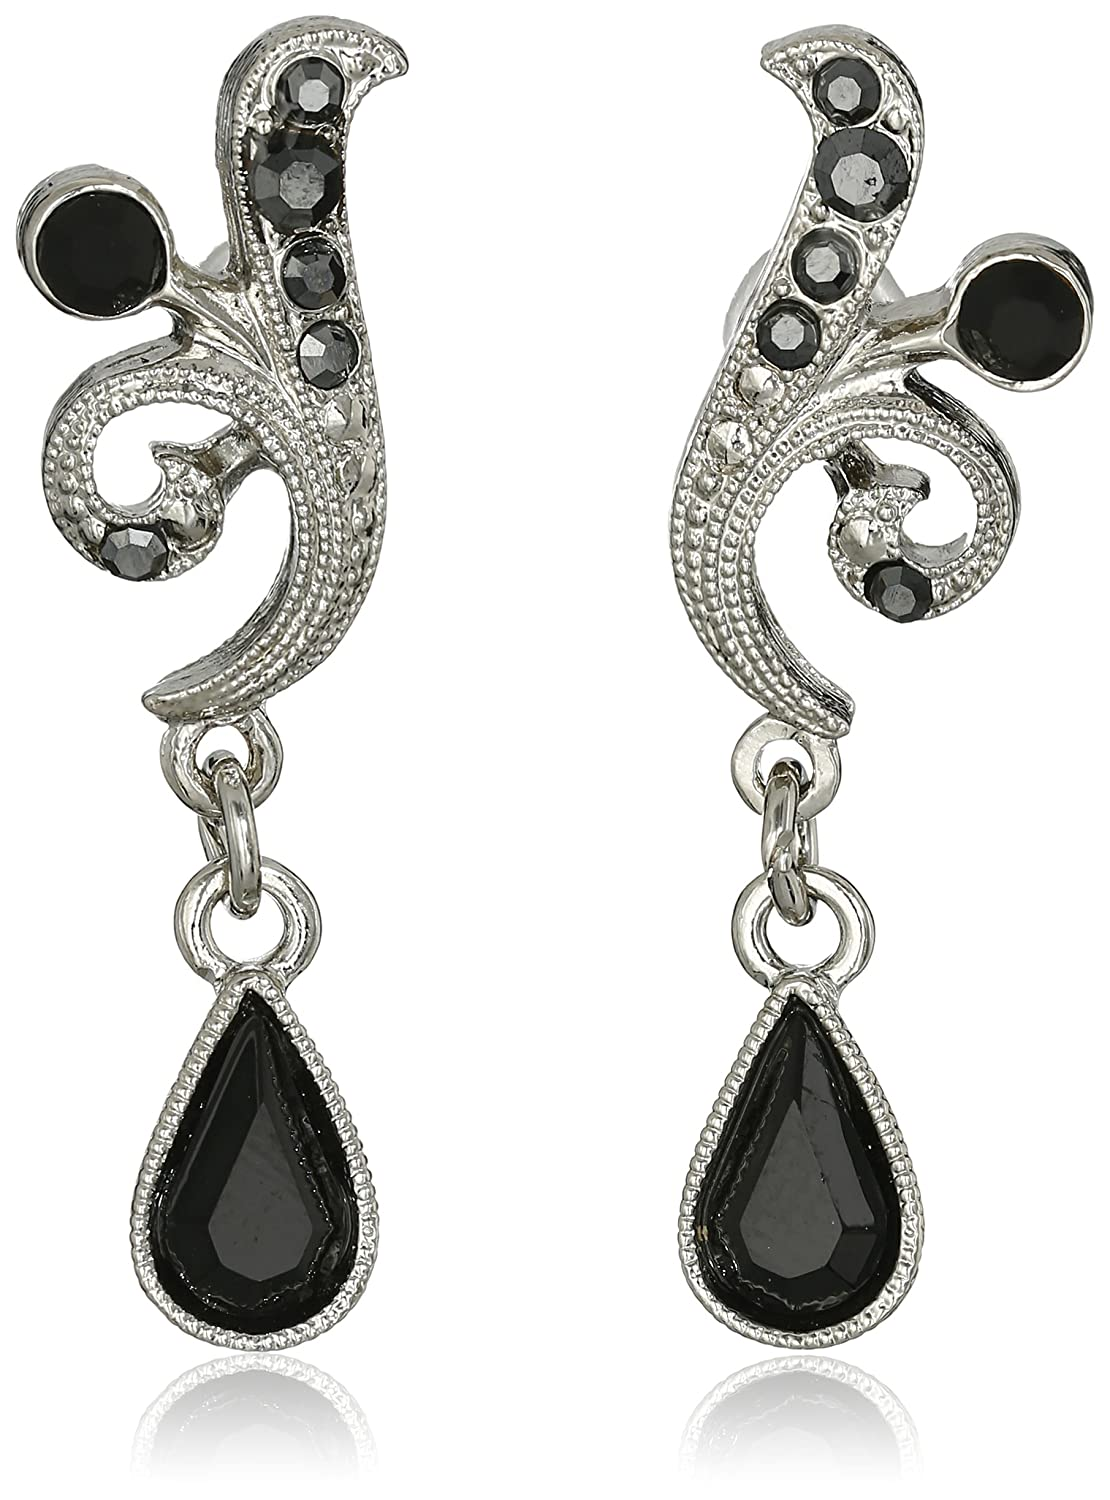 1920s Jewelry Styles History 1928 Jewelry Silver-Tone Black and Hematite Color Crystal Vine Drop  sc 1 st  Vintage Dancer & Ladies 1920s Jewelry Styles- Fashion for Flappers